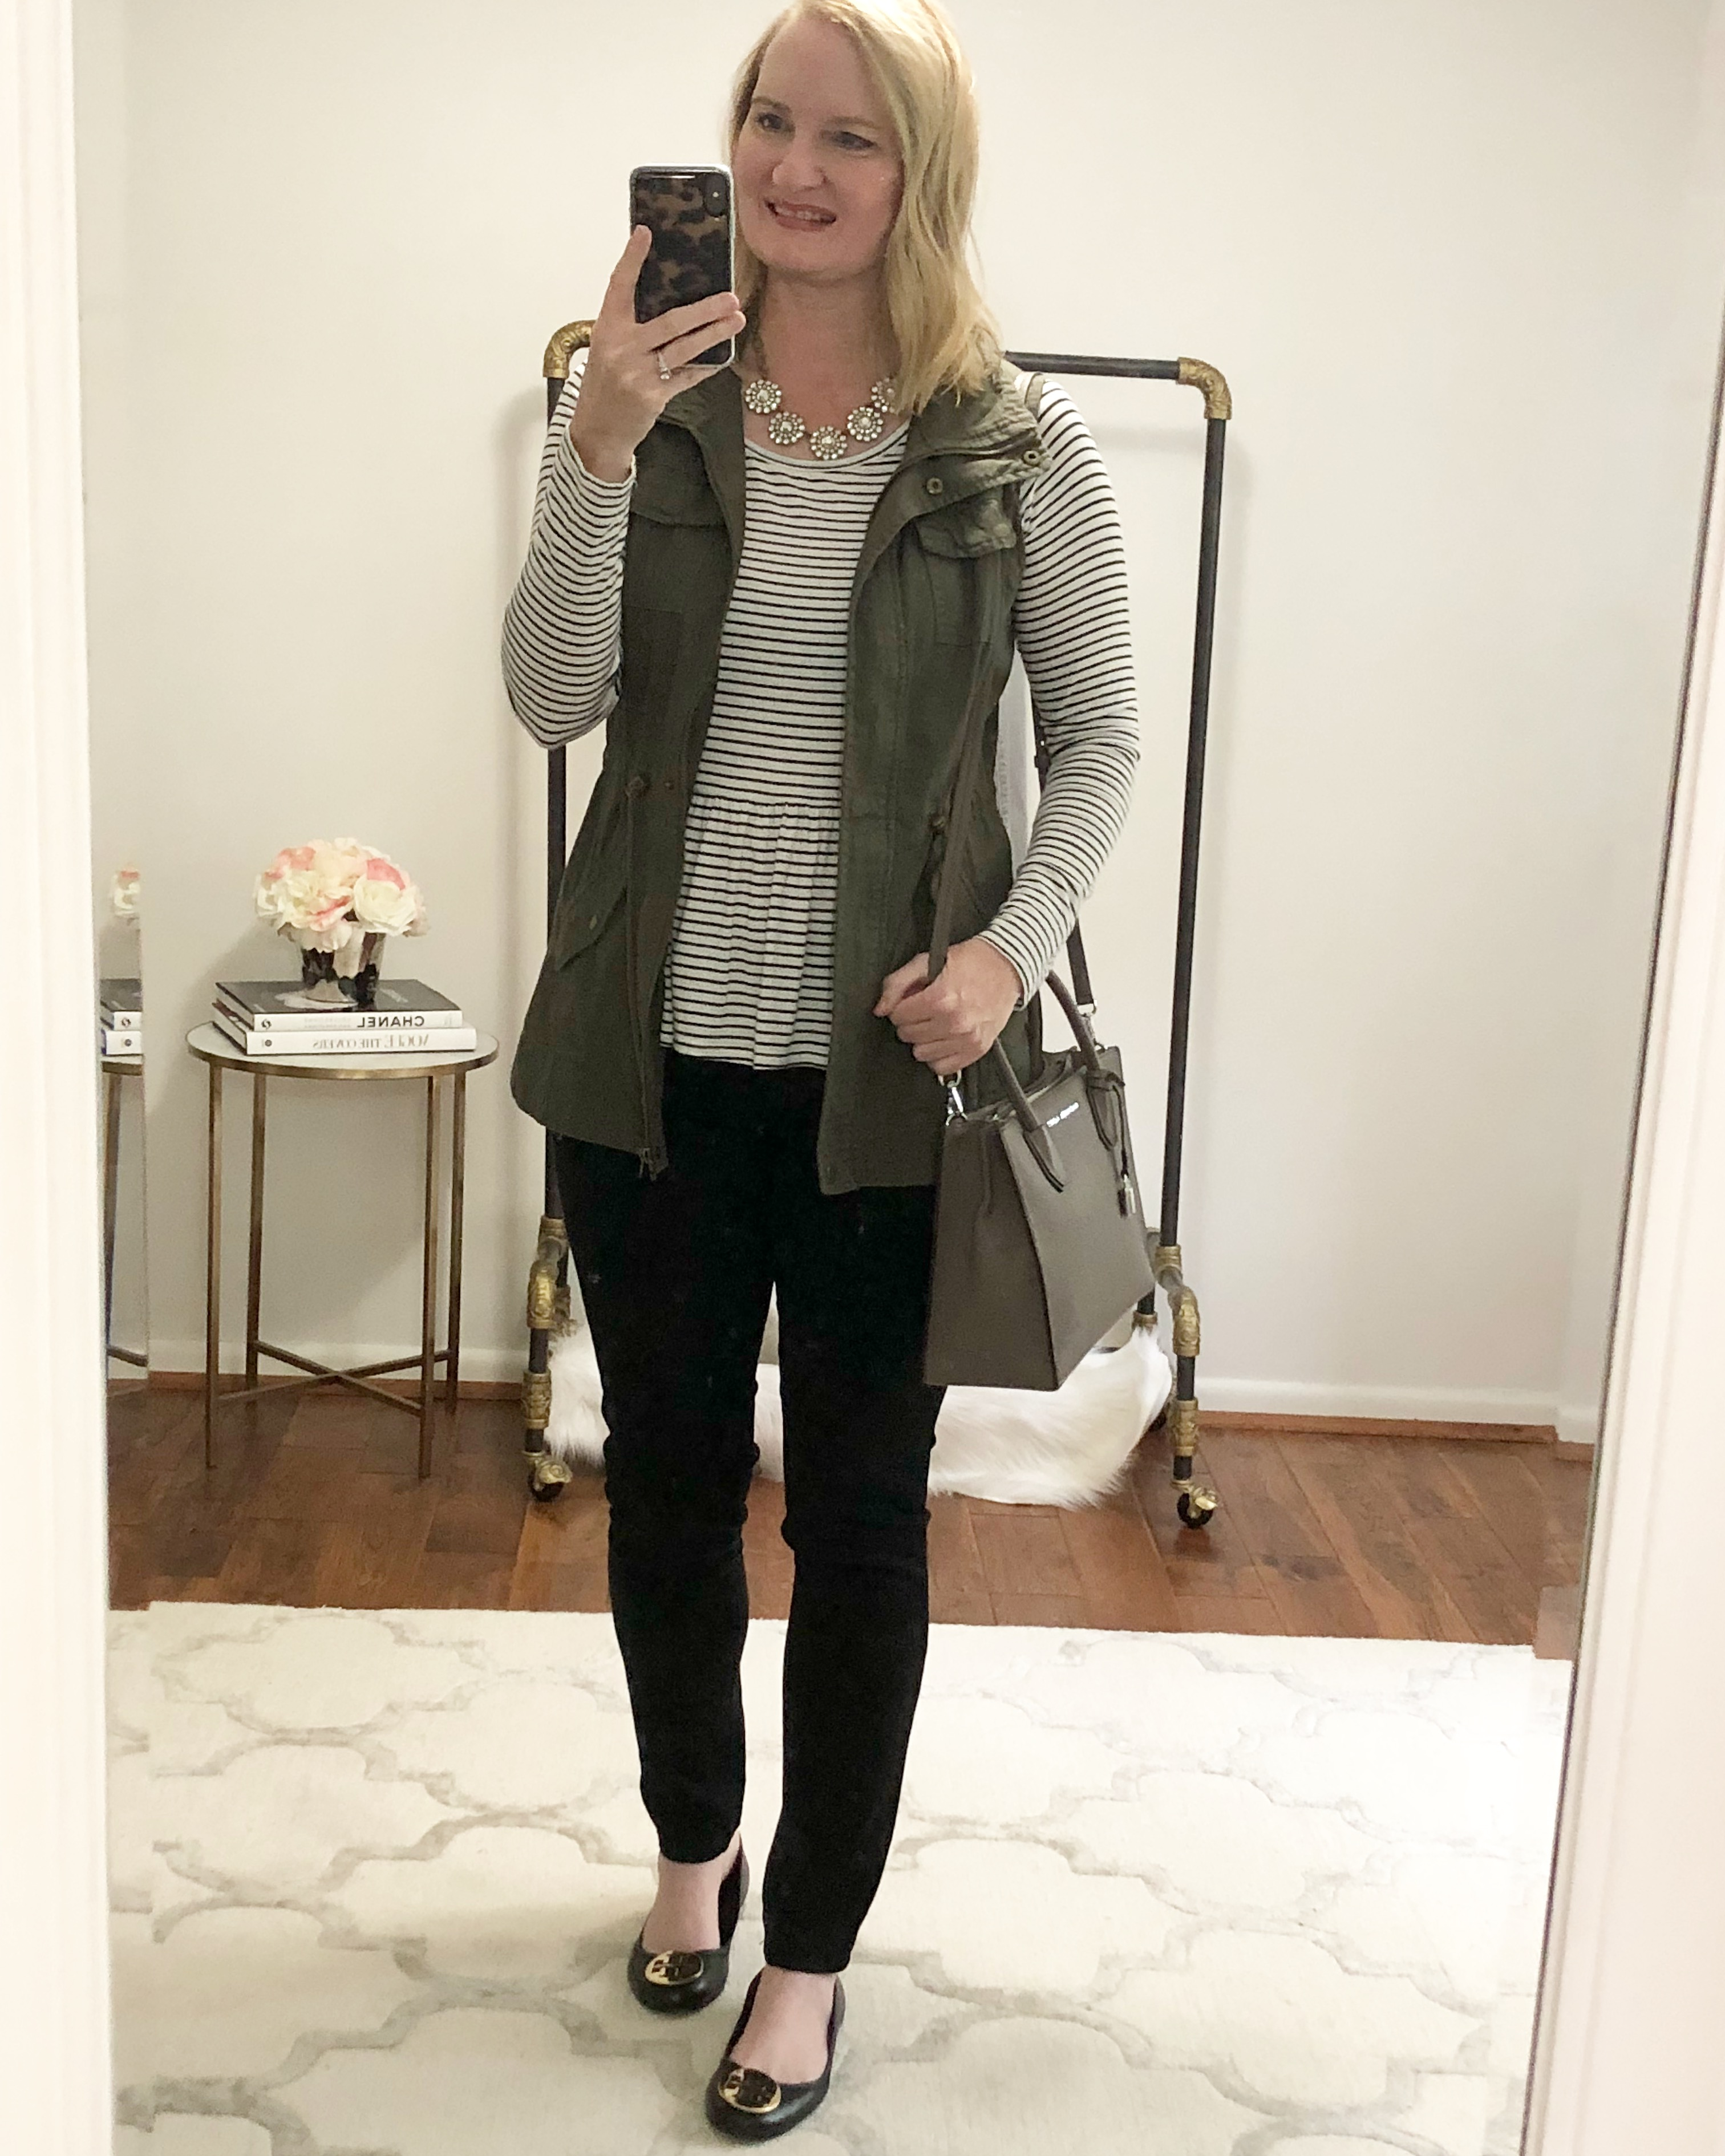 10x10 Challenge Fall 2018 - Outfit 2